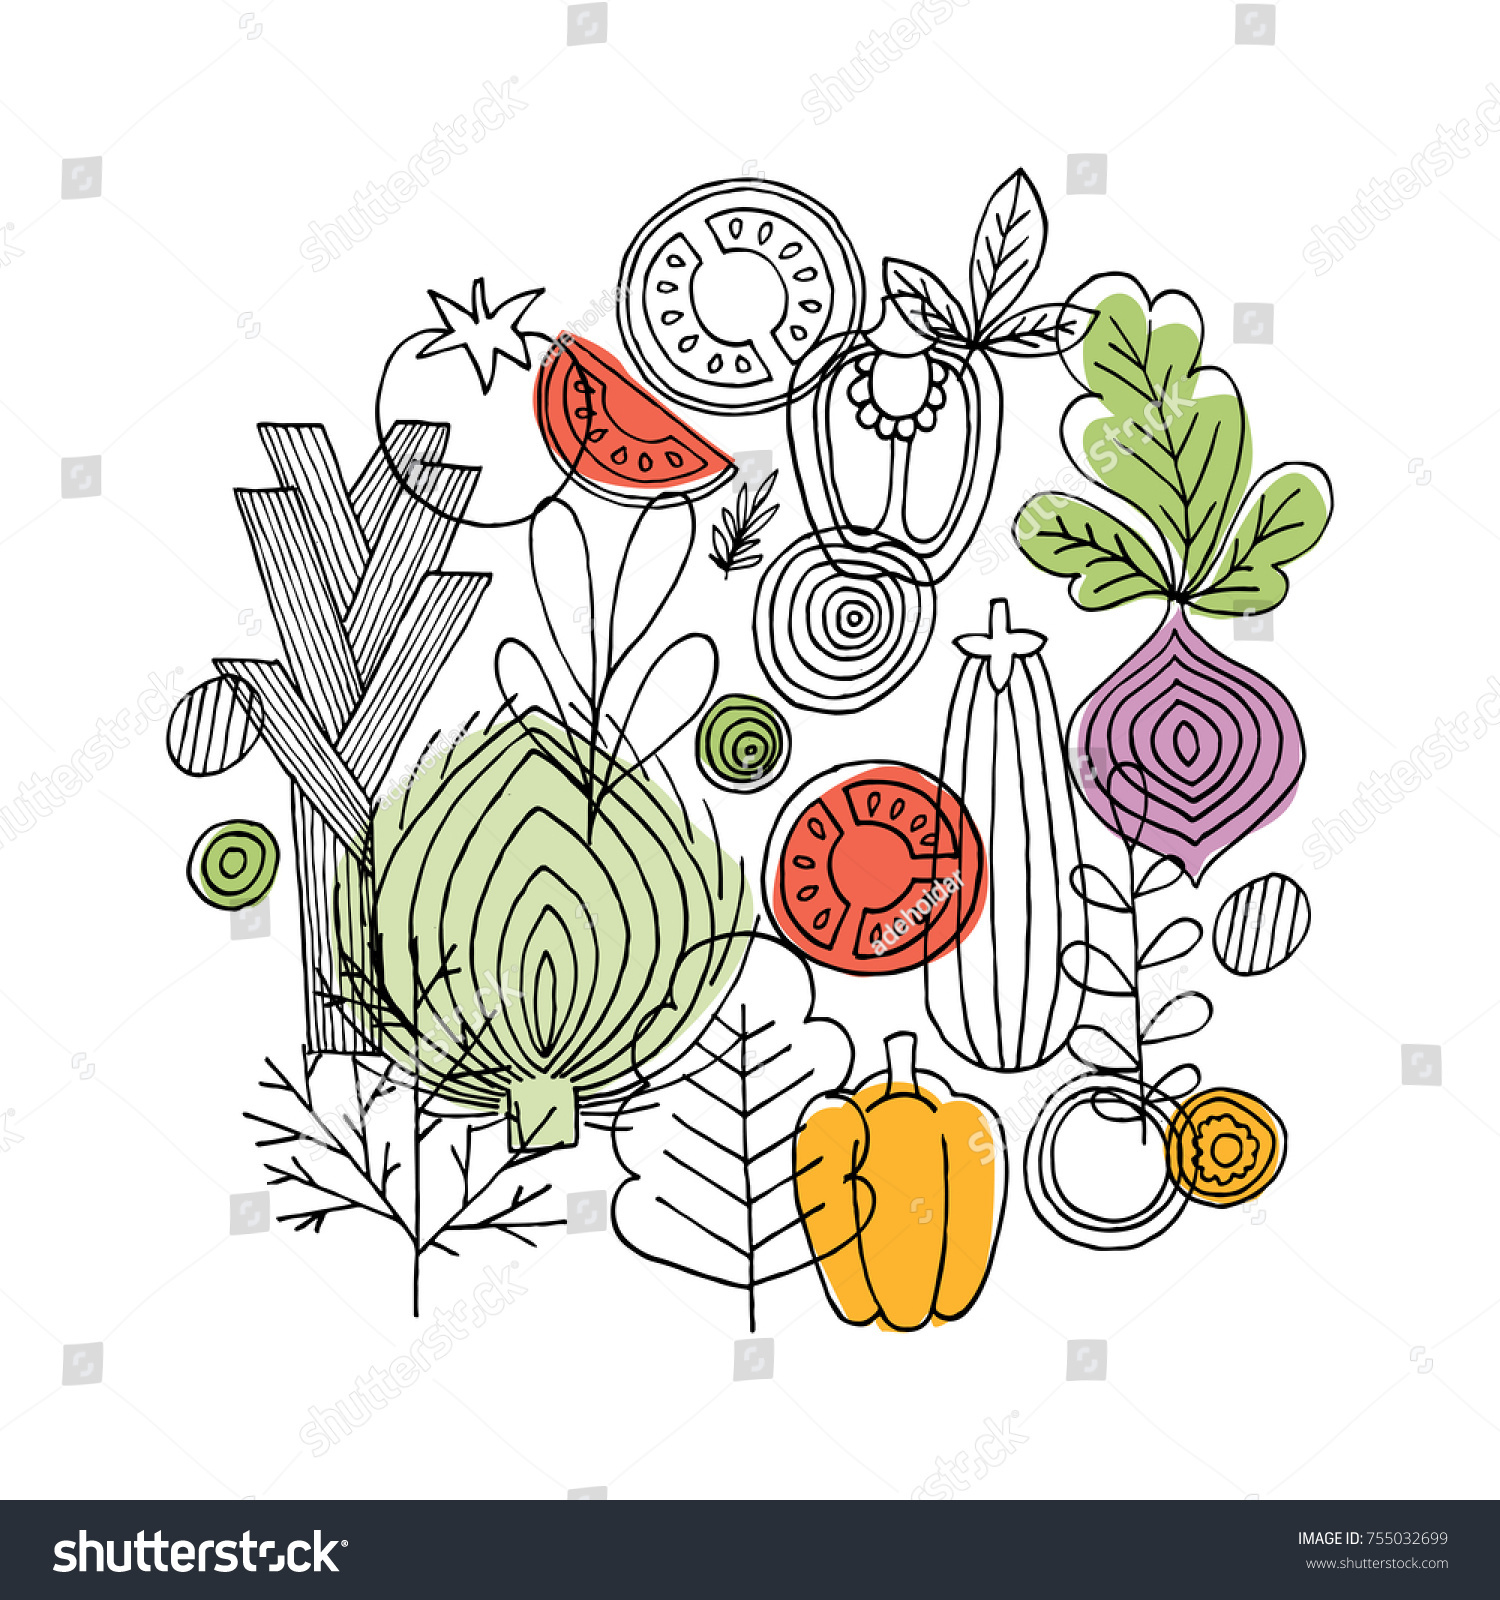 Vegetables round composition. Linear graphic. Vegetables background. Scandinavian style. Healthy food. Vector illustration #755032699